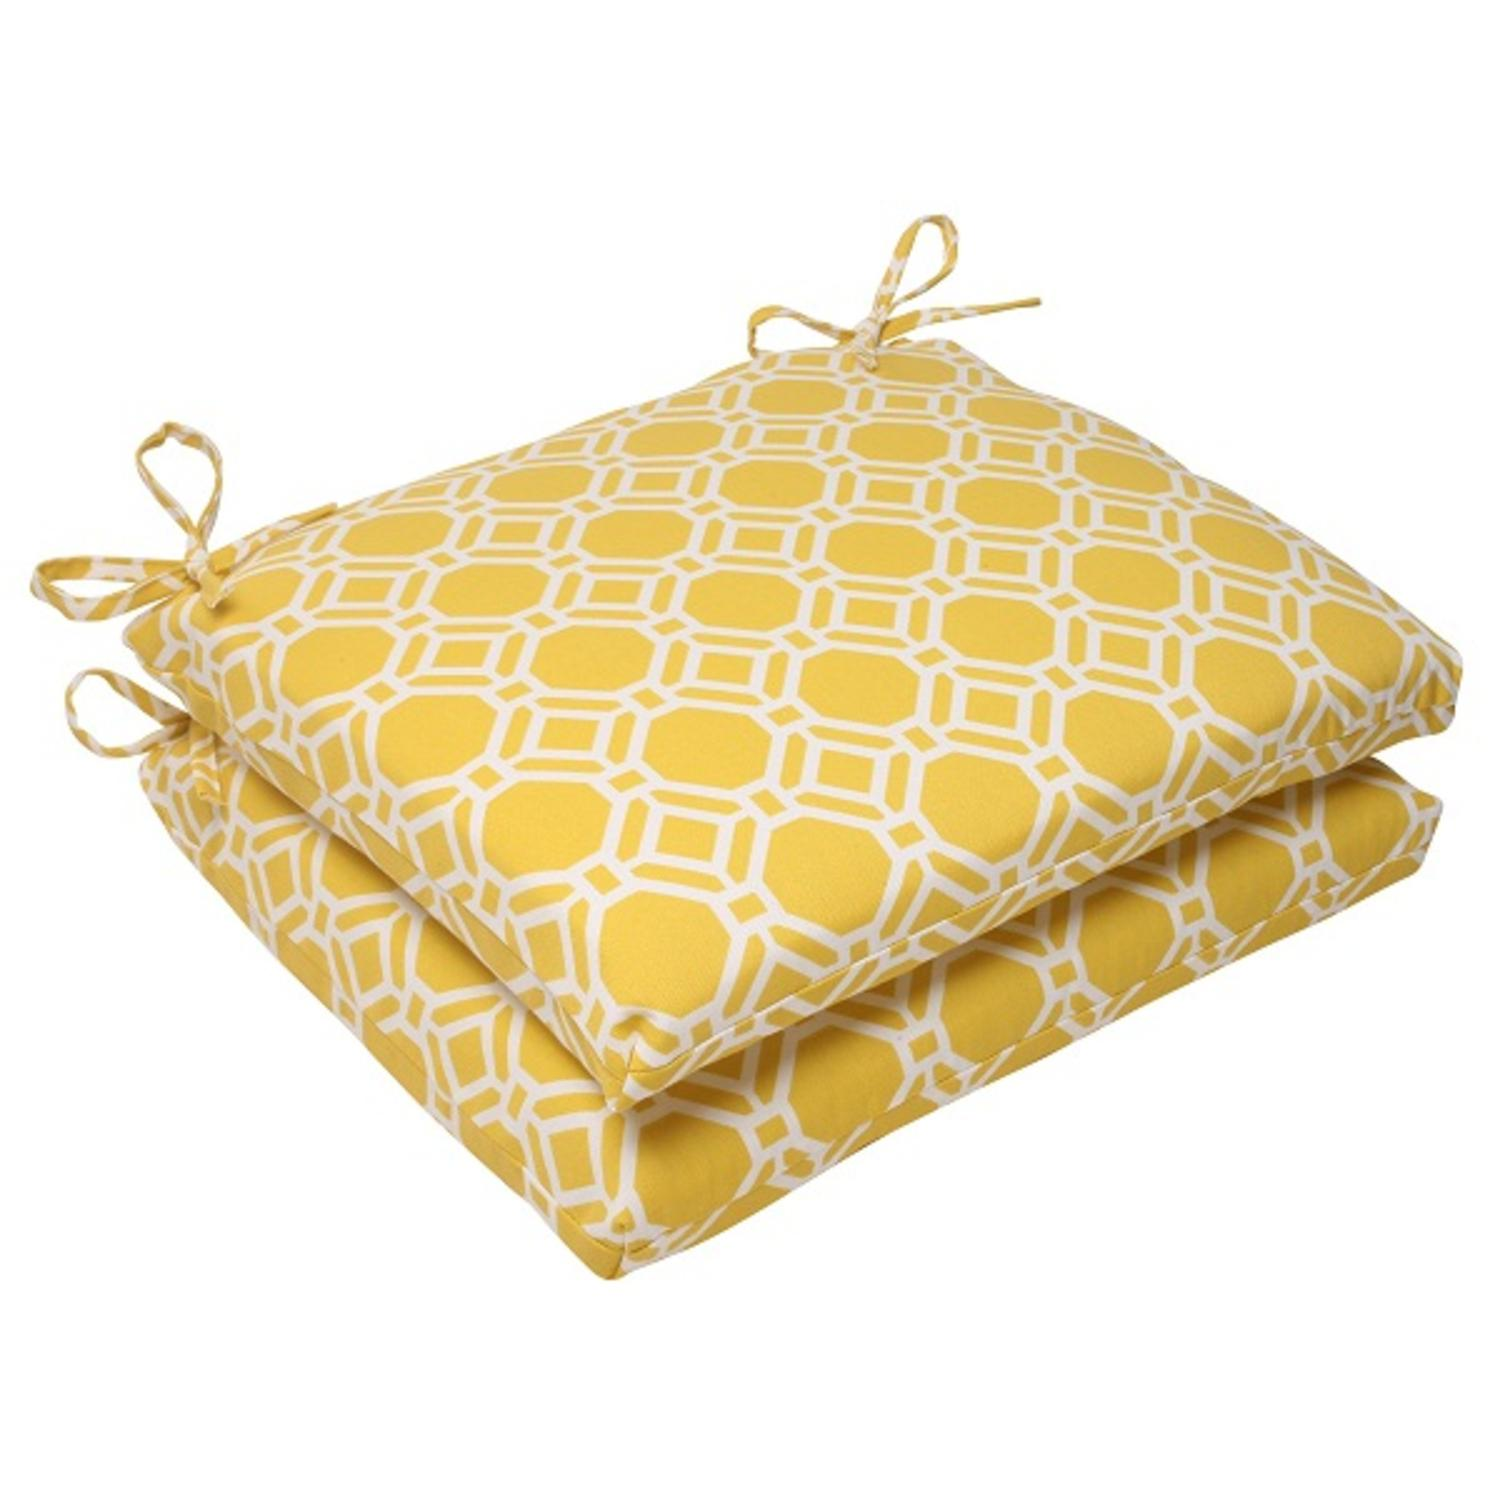 Set of 2 Sunny Yellow & White Geometric Square Outdoor Patio Seat Cushions 18.5""